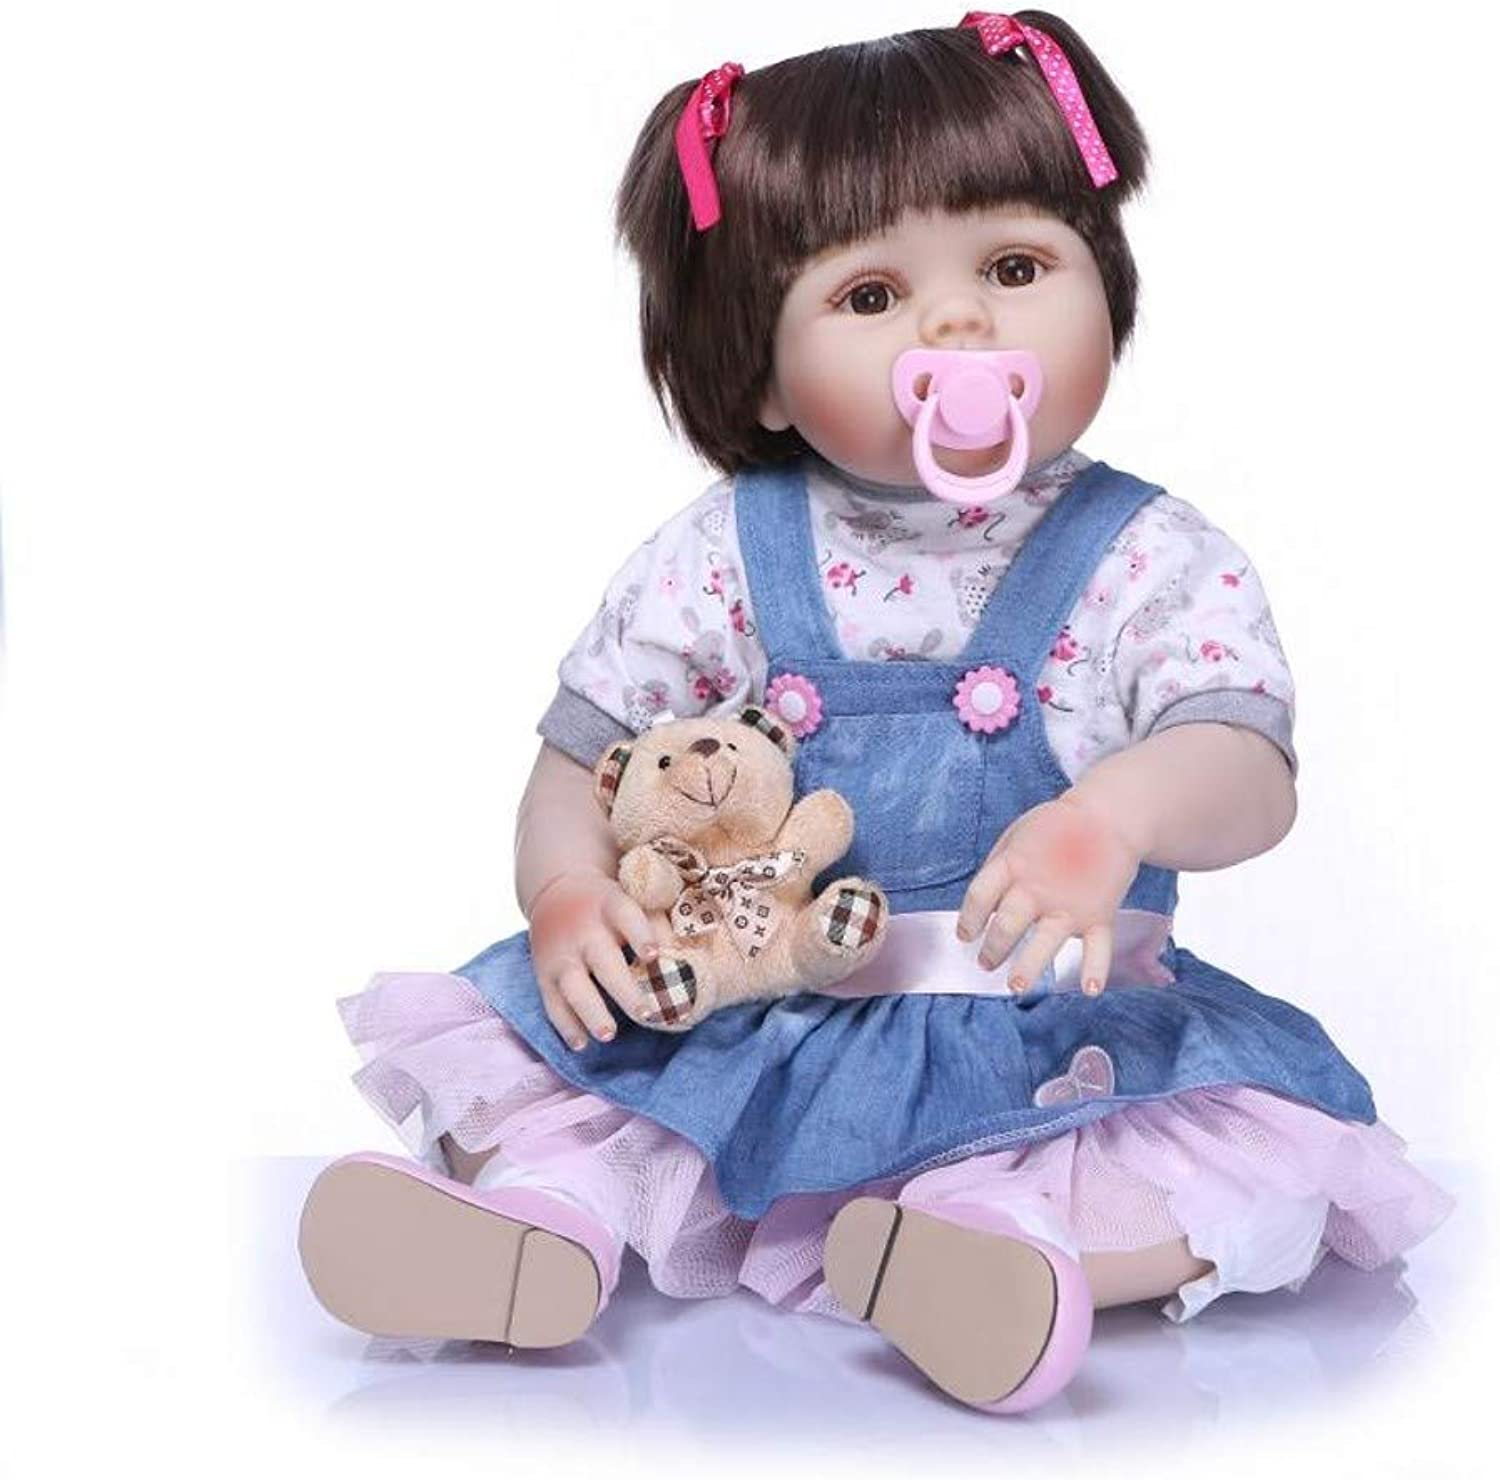 Rebirth baby doll 22 inch body soft silicone bathing doll handmade handmade newborn baby toy gift looks real doll toy over 3 years old